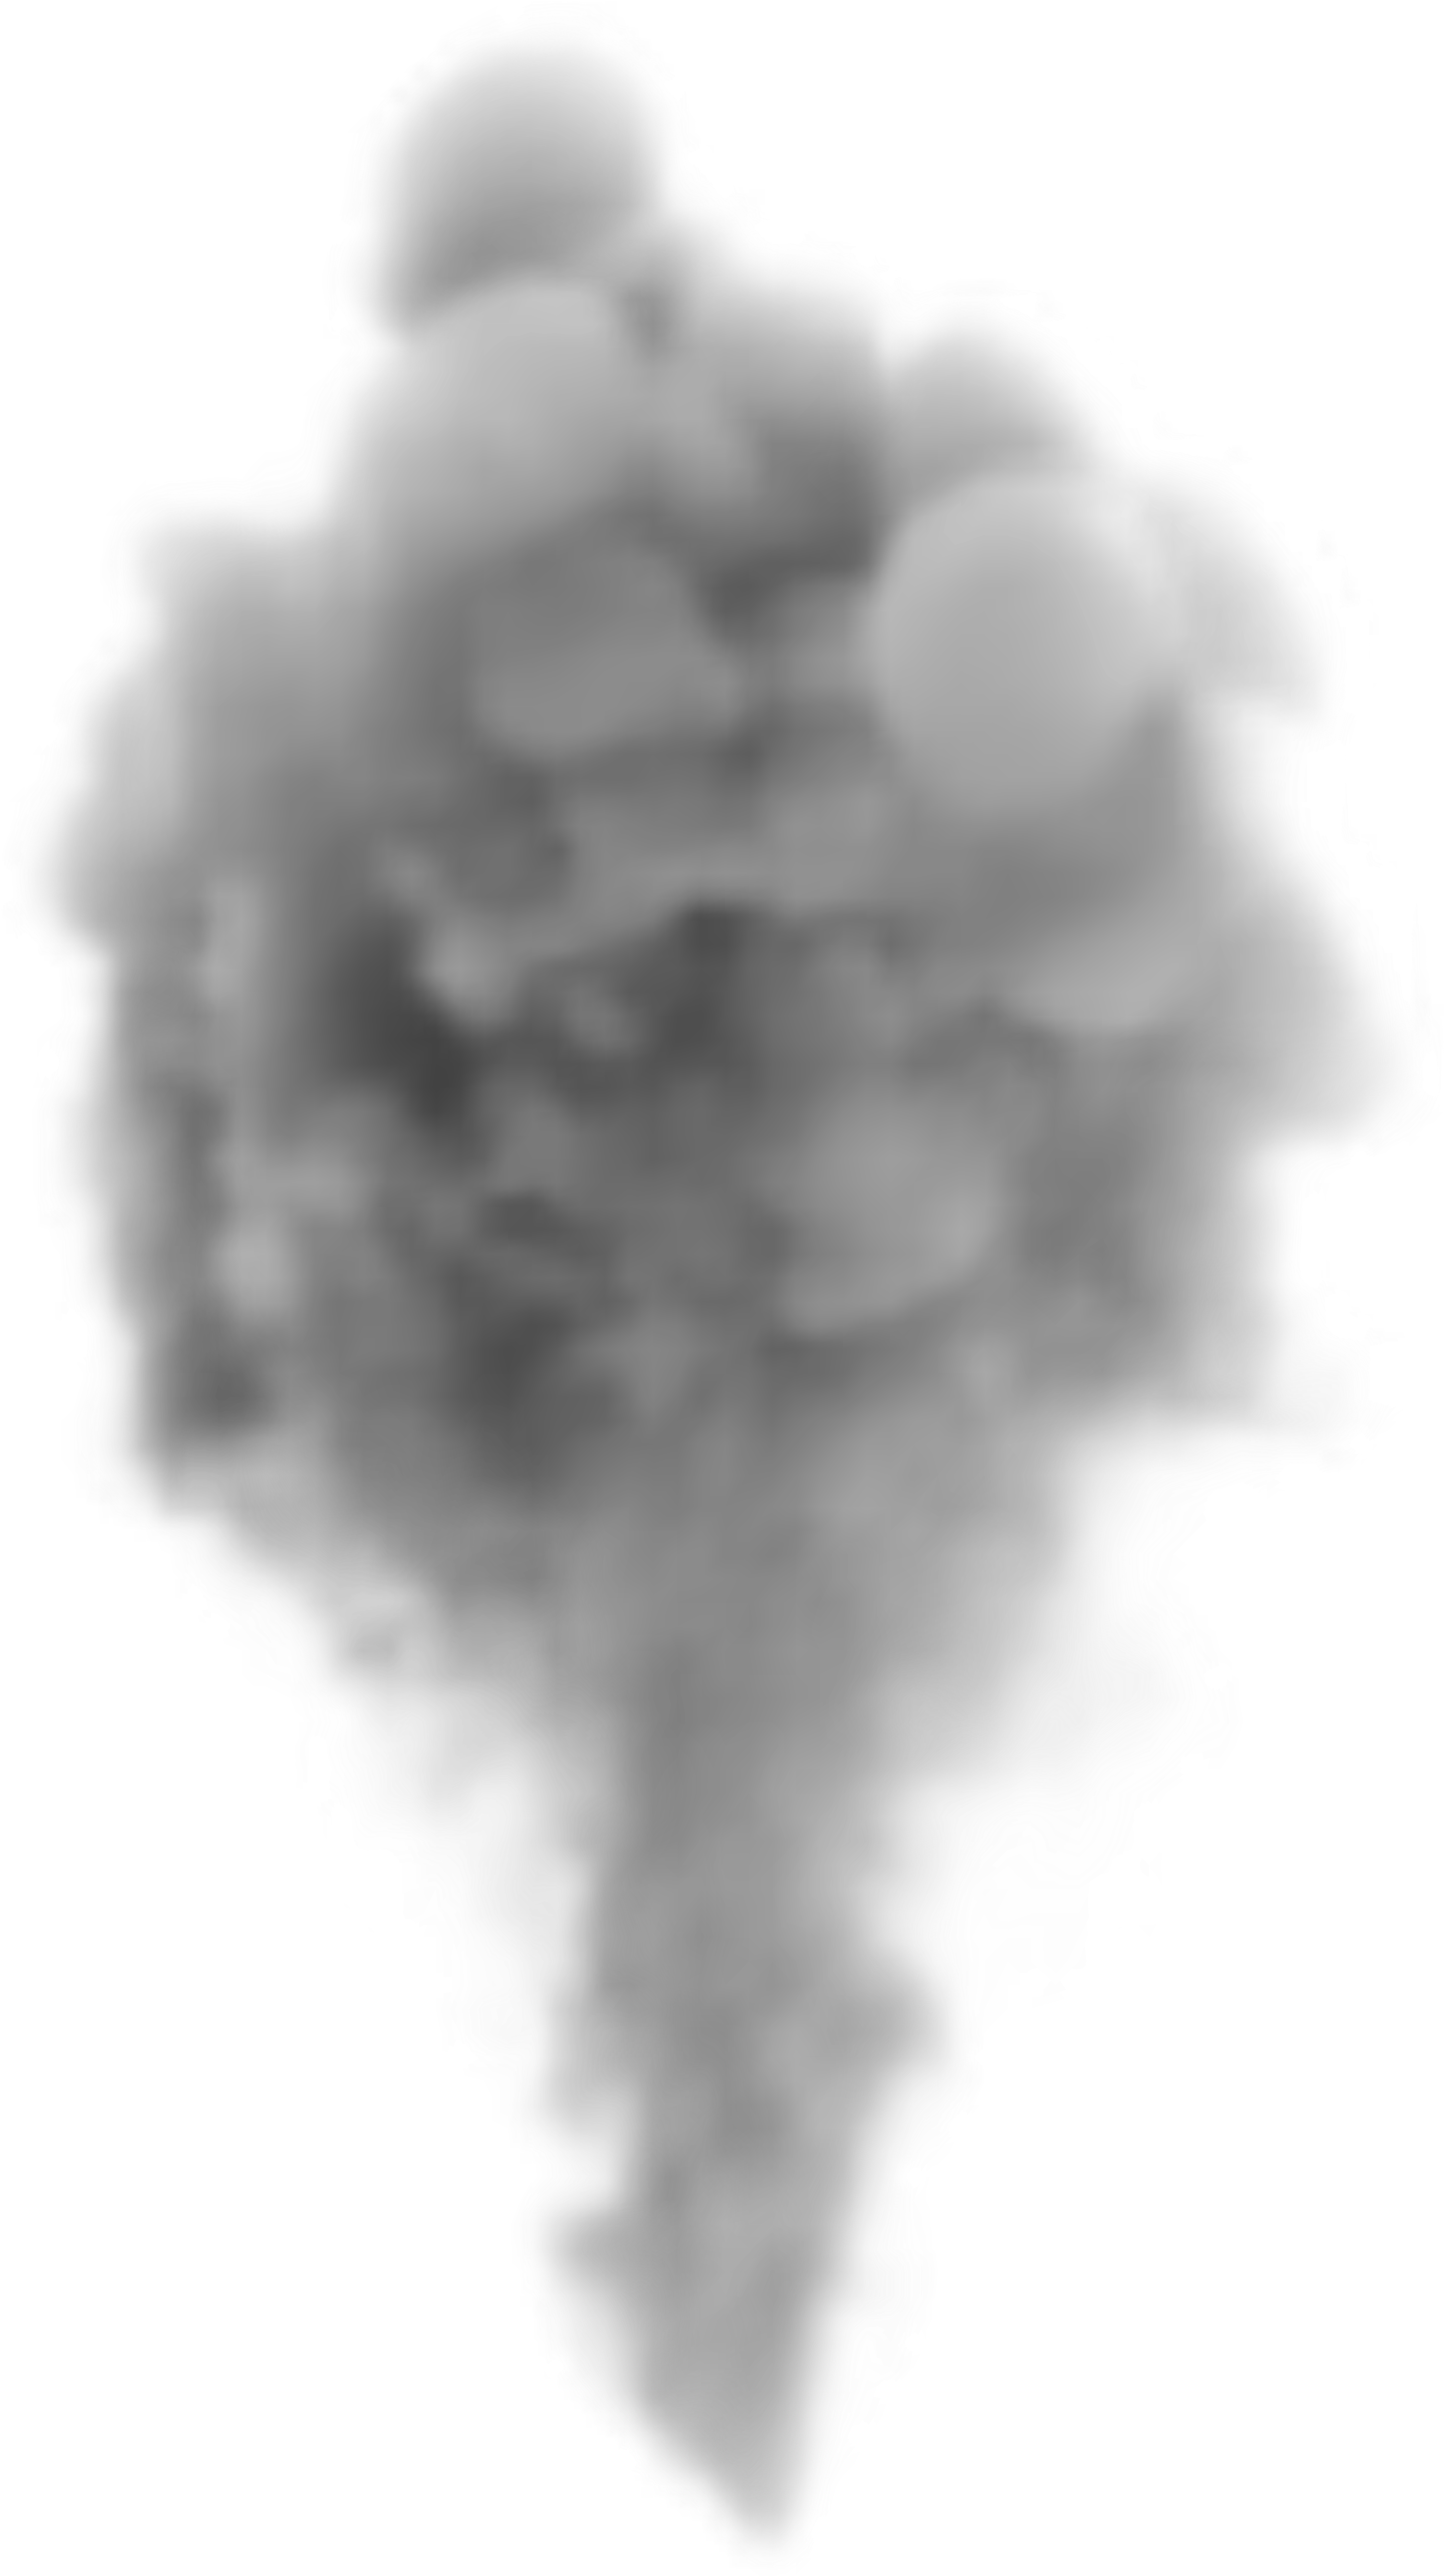 Download png image with. Smoke clipart transparent background smoke clip art black and white library